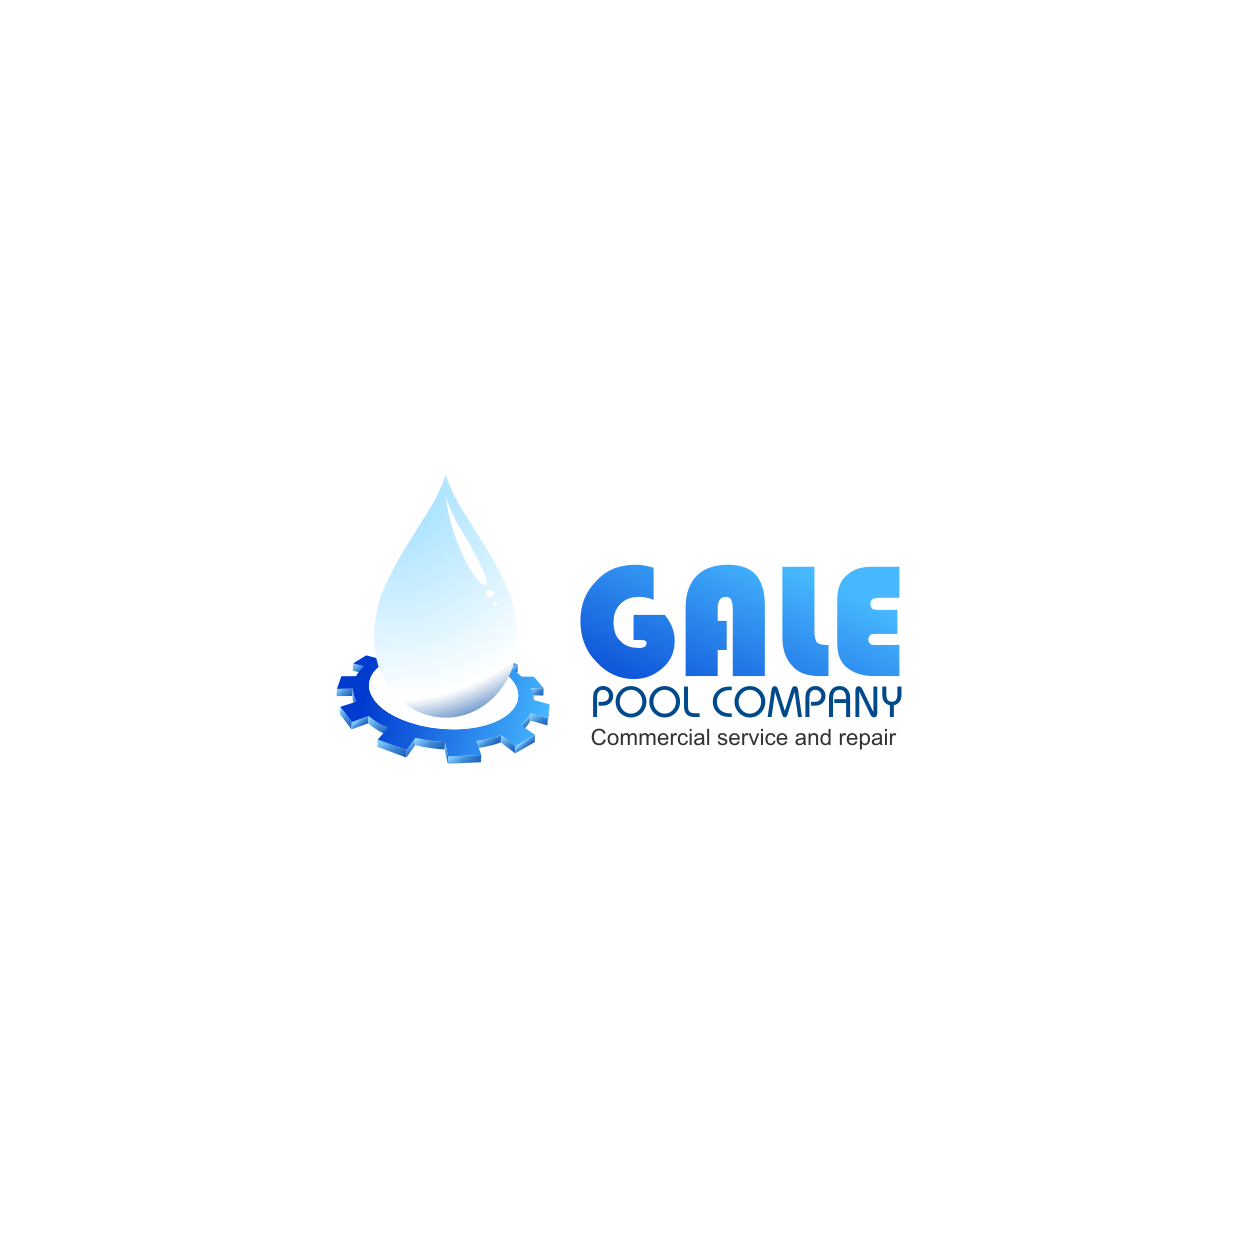 Logo Design by rifatz - Entry No. 104 in the Logo Design Contest Imaginative Logo Design for Gale Pool Company.